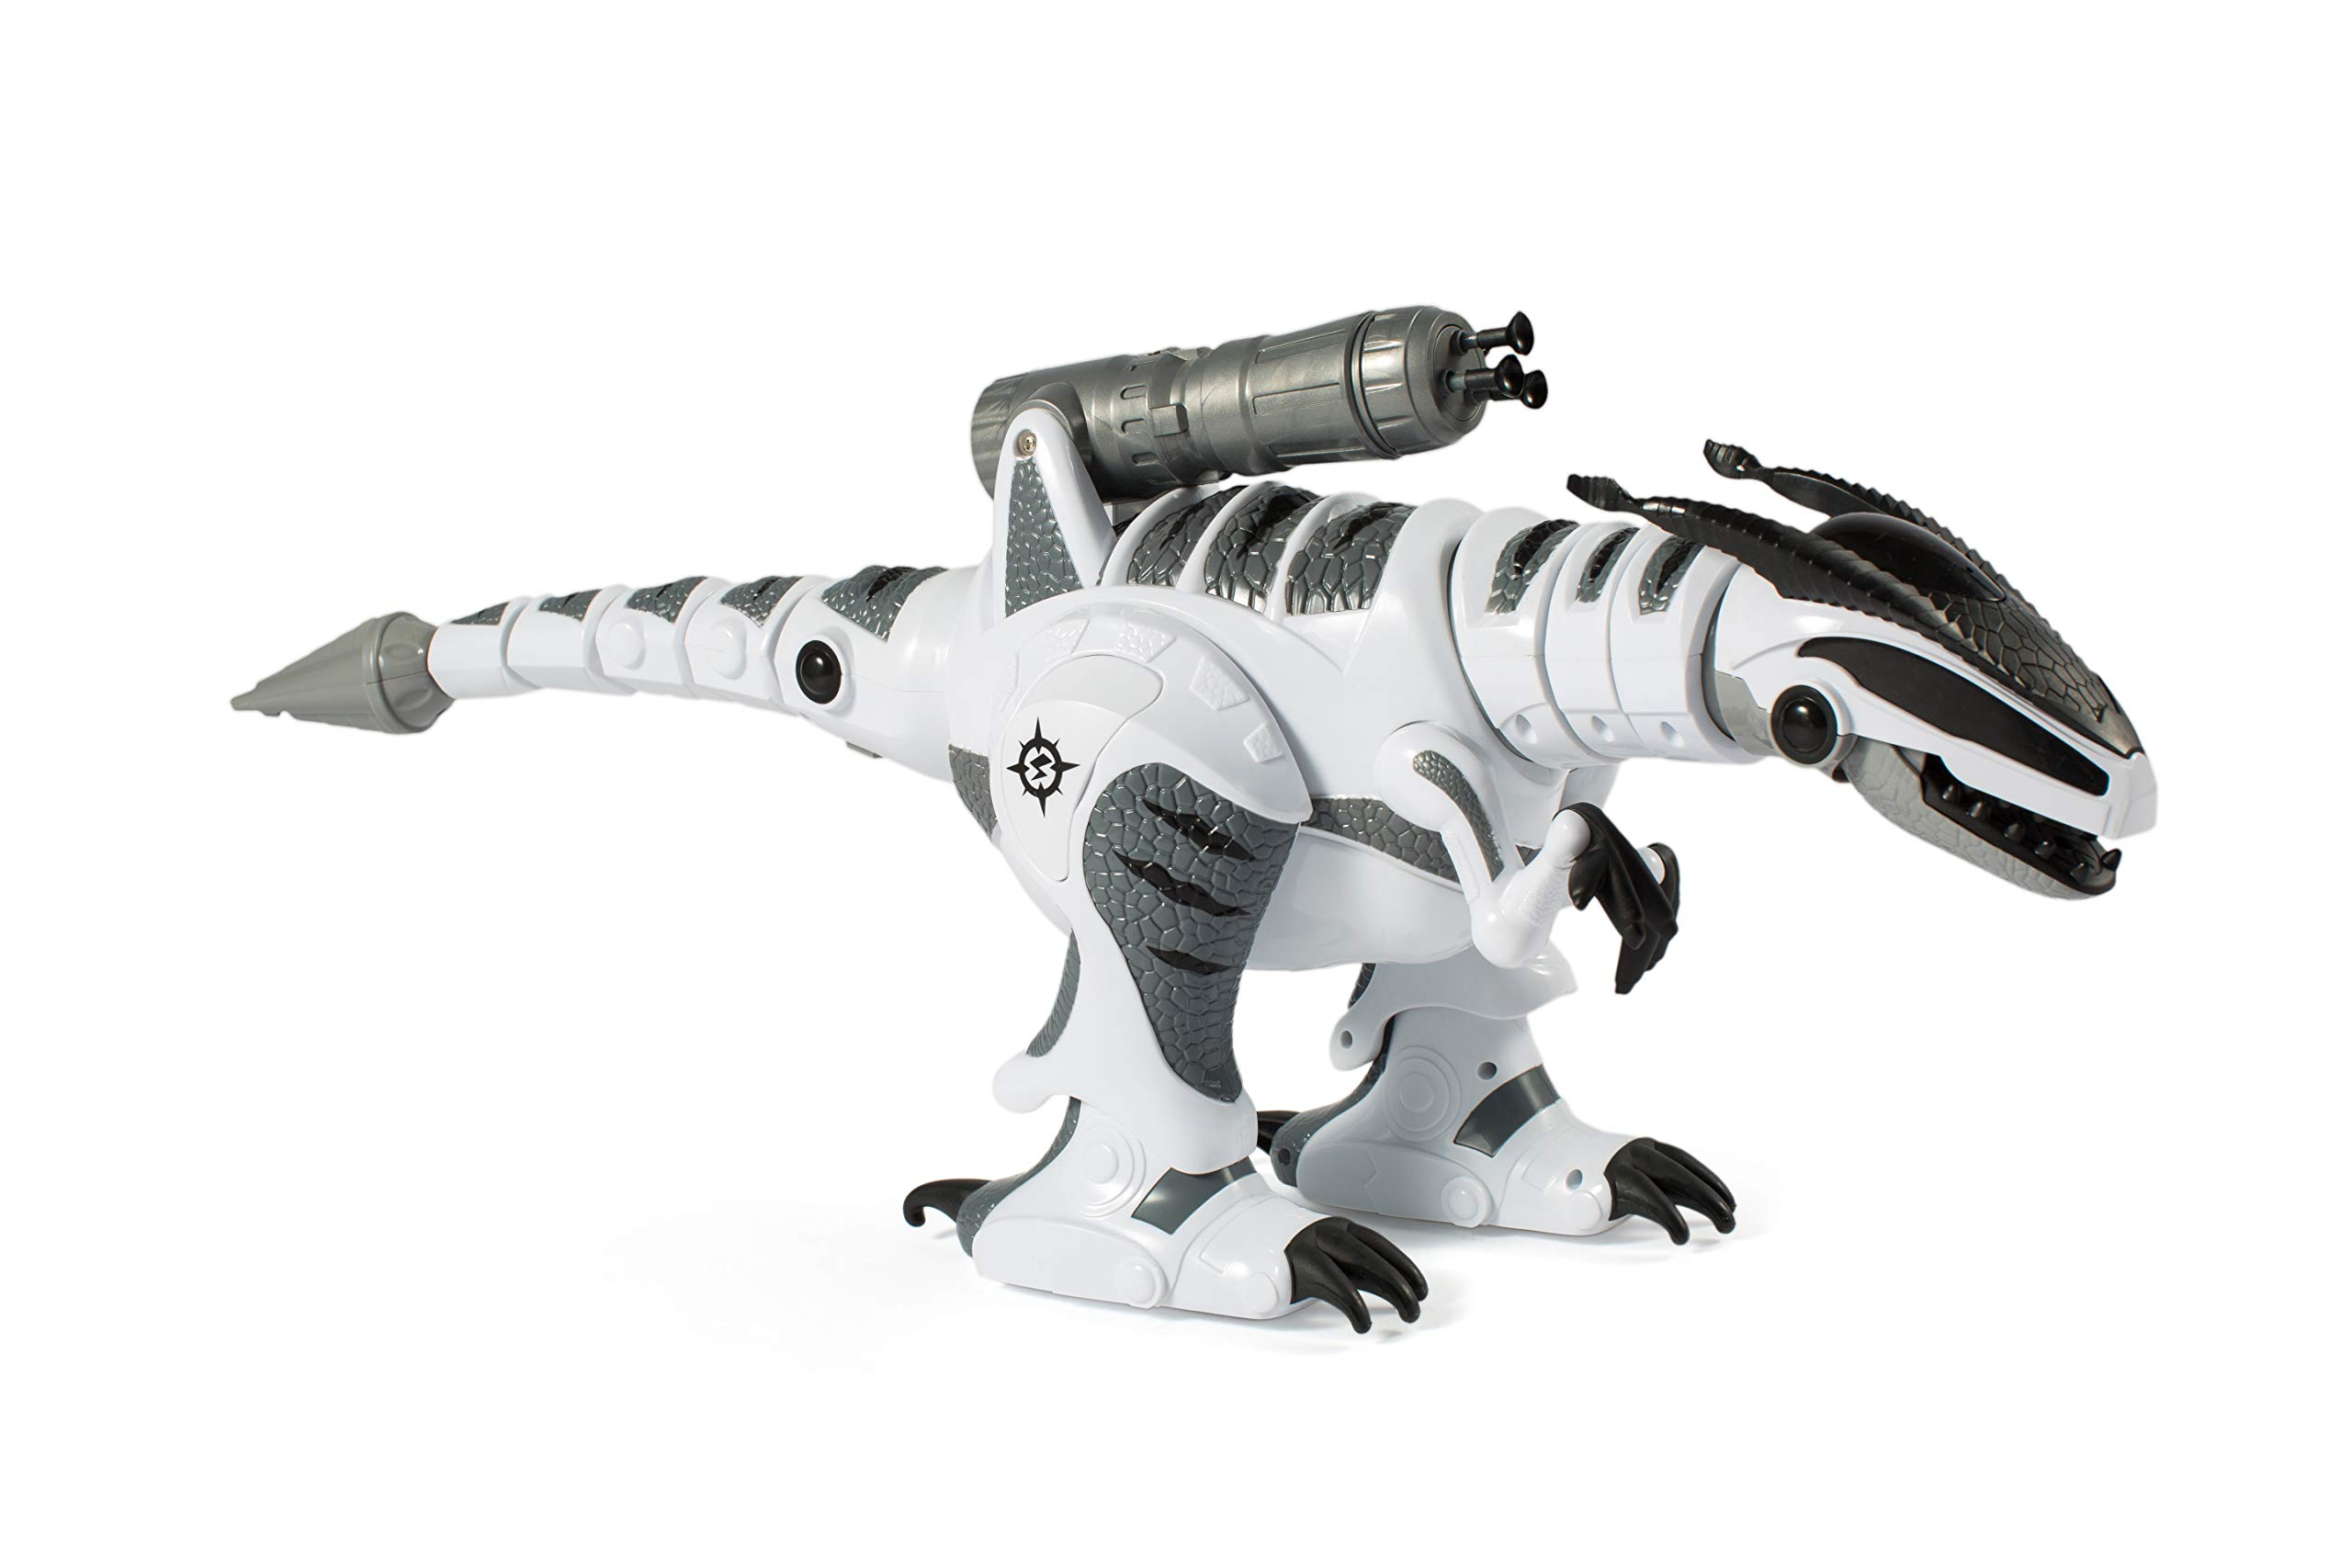 NBD Corp RC Robot Dinosaur That's an Intelligent and Interactive Smart Toy Remote Control Robot That Walks, Dances, Sings and Has A Fight Mode